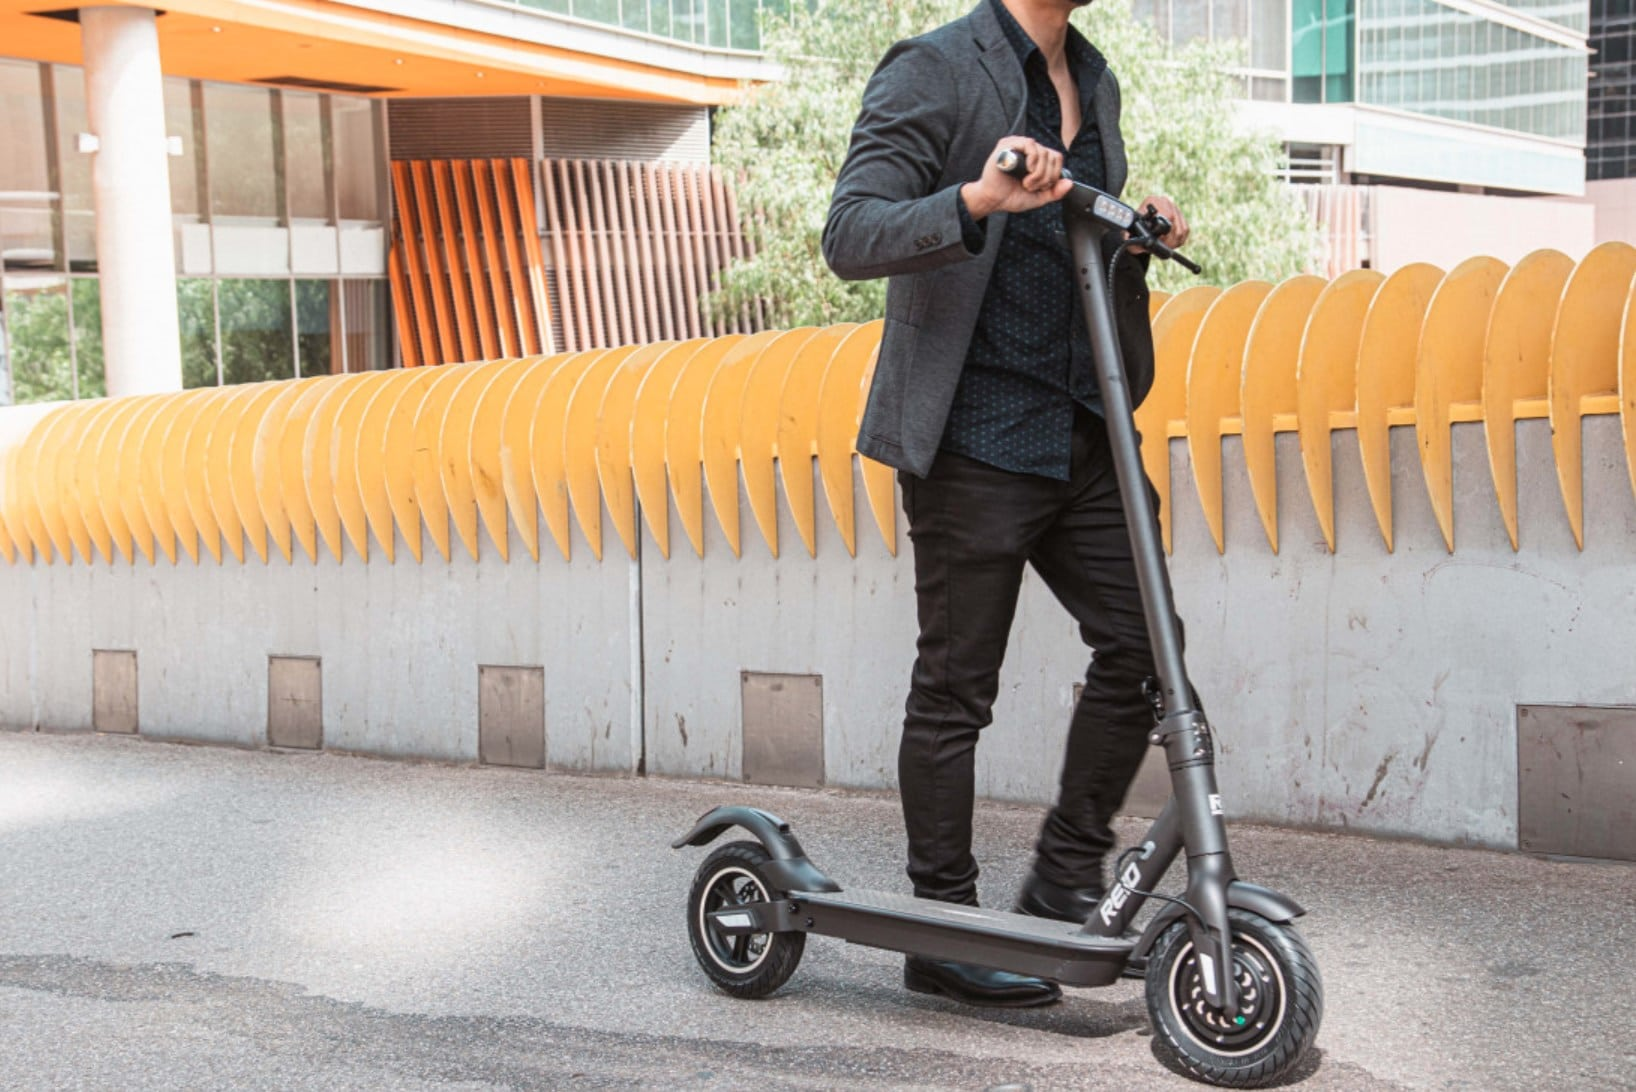 Riding my first electric scooter – Reid E4 Plus eScooter Review